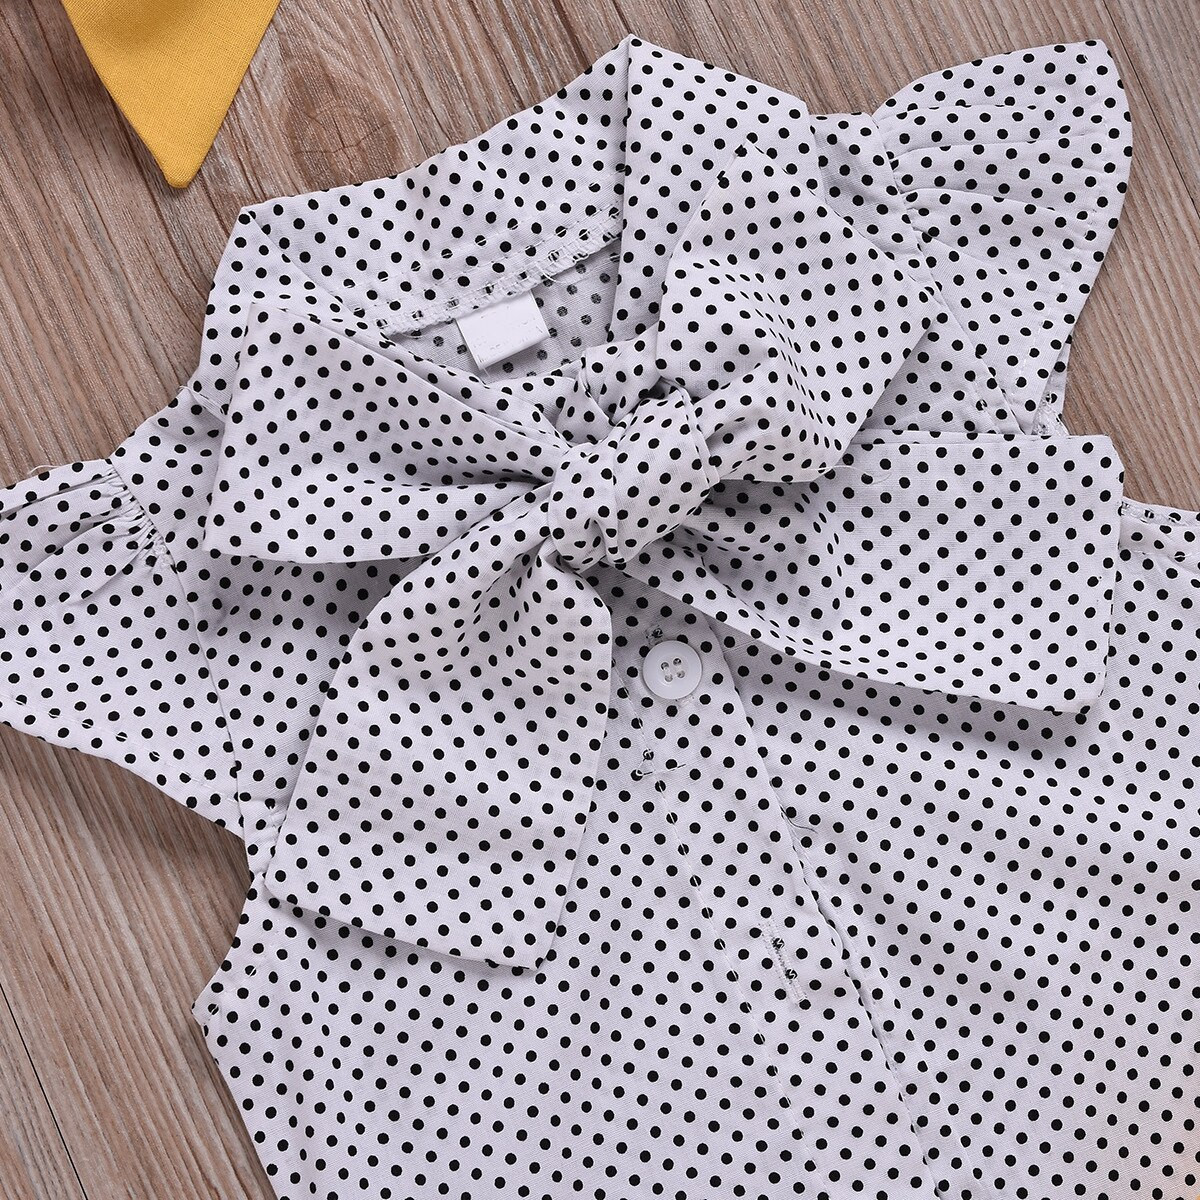 Sodawn Kid Clothes Baby Girl Clothes 2020 Dot Flying Sleeve Top+Strap Dress+Headband 3-Piece Summer Clothes For Kids Girl